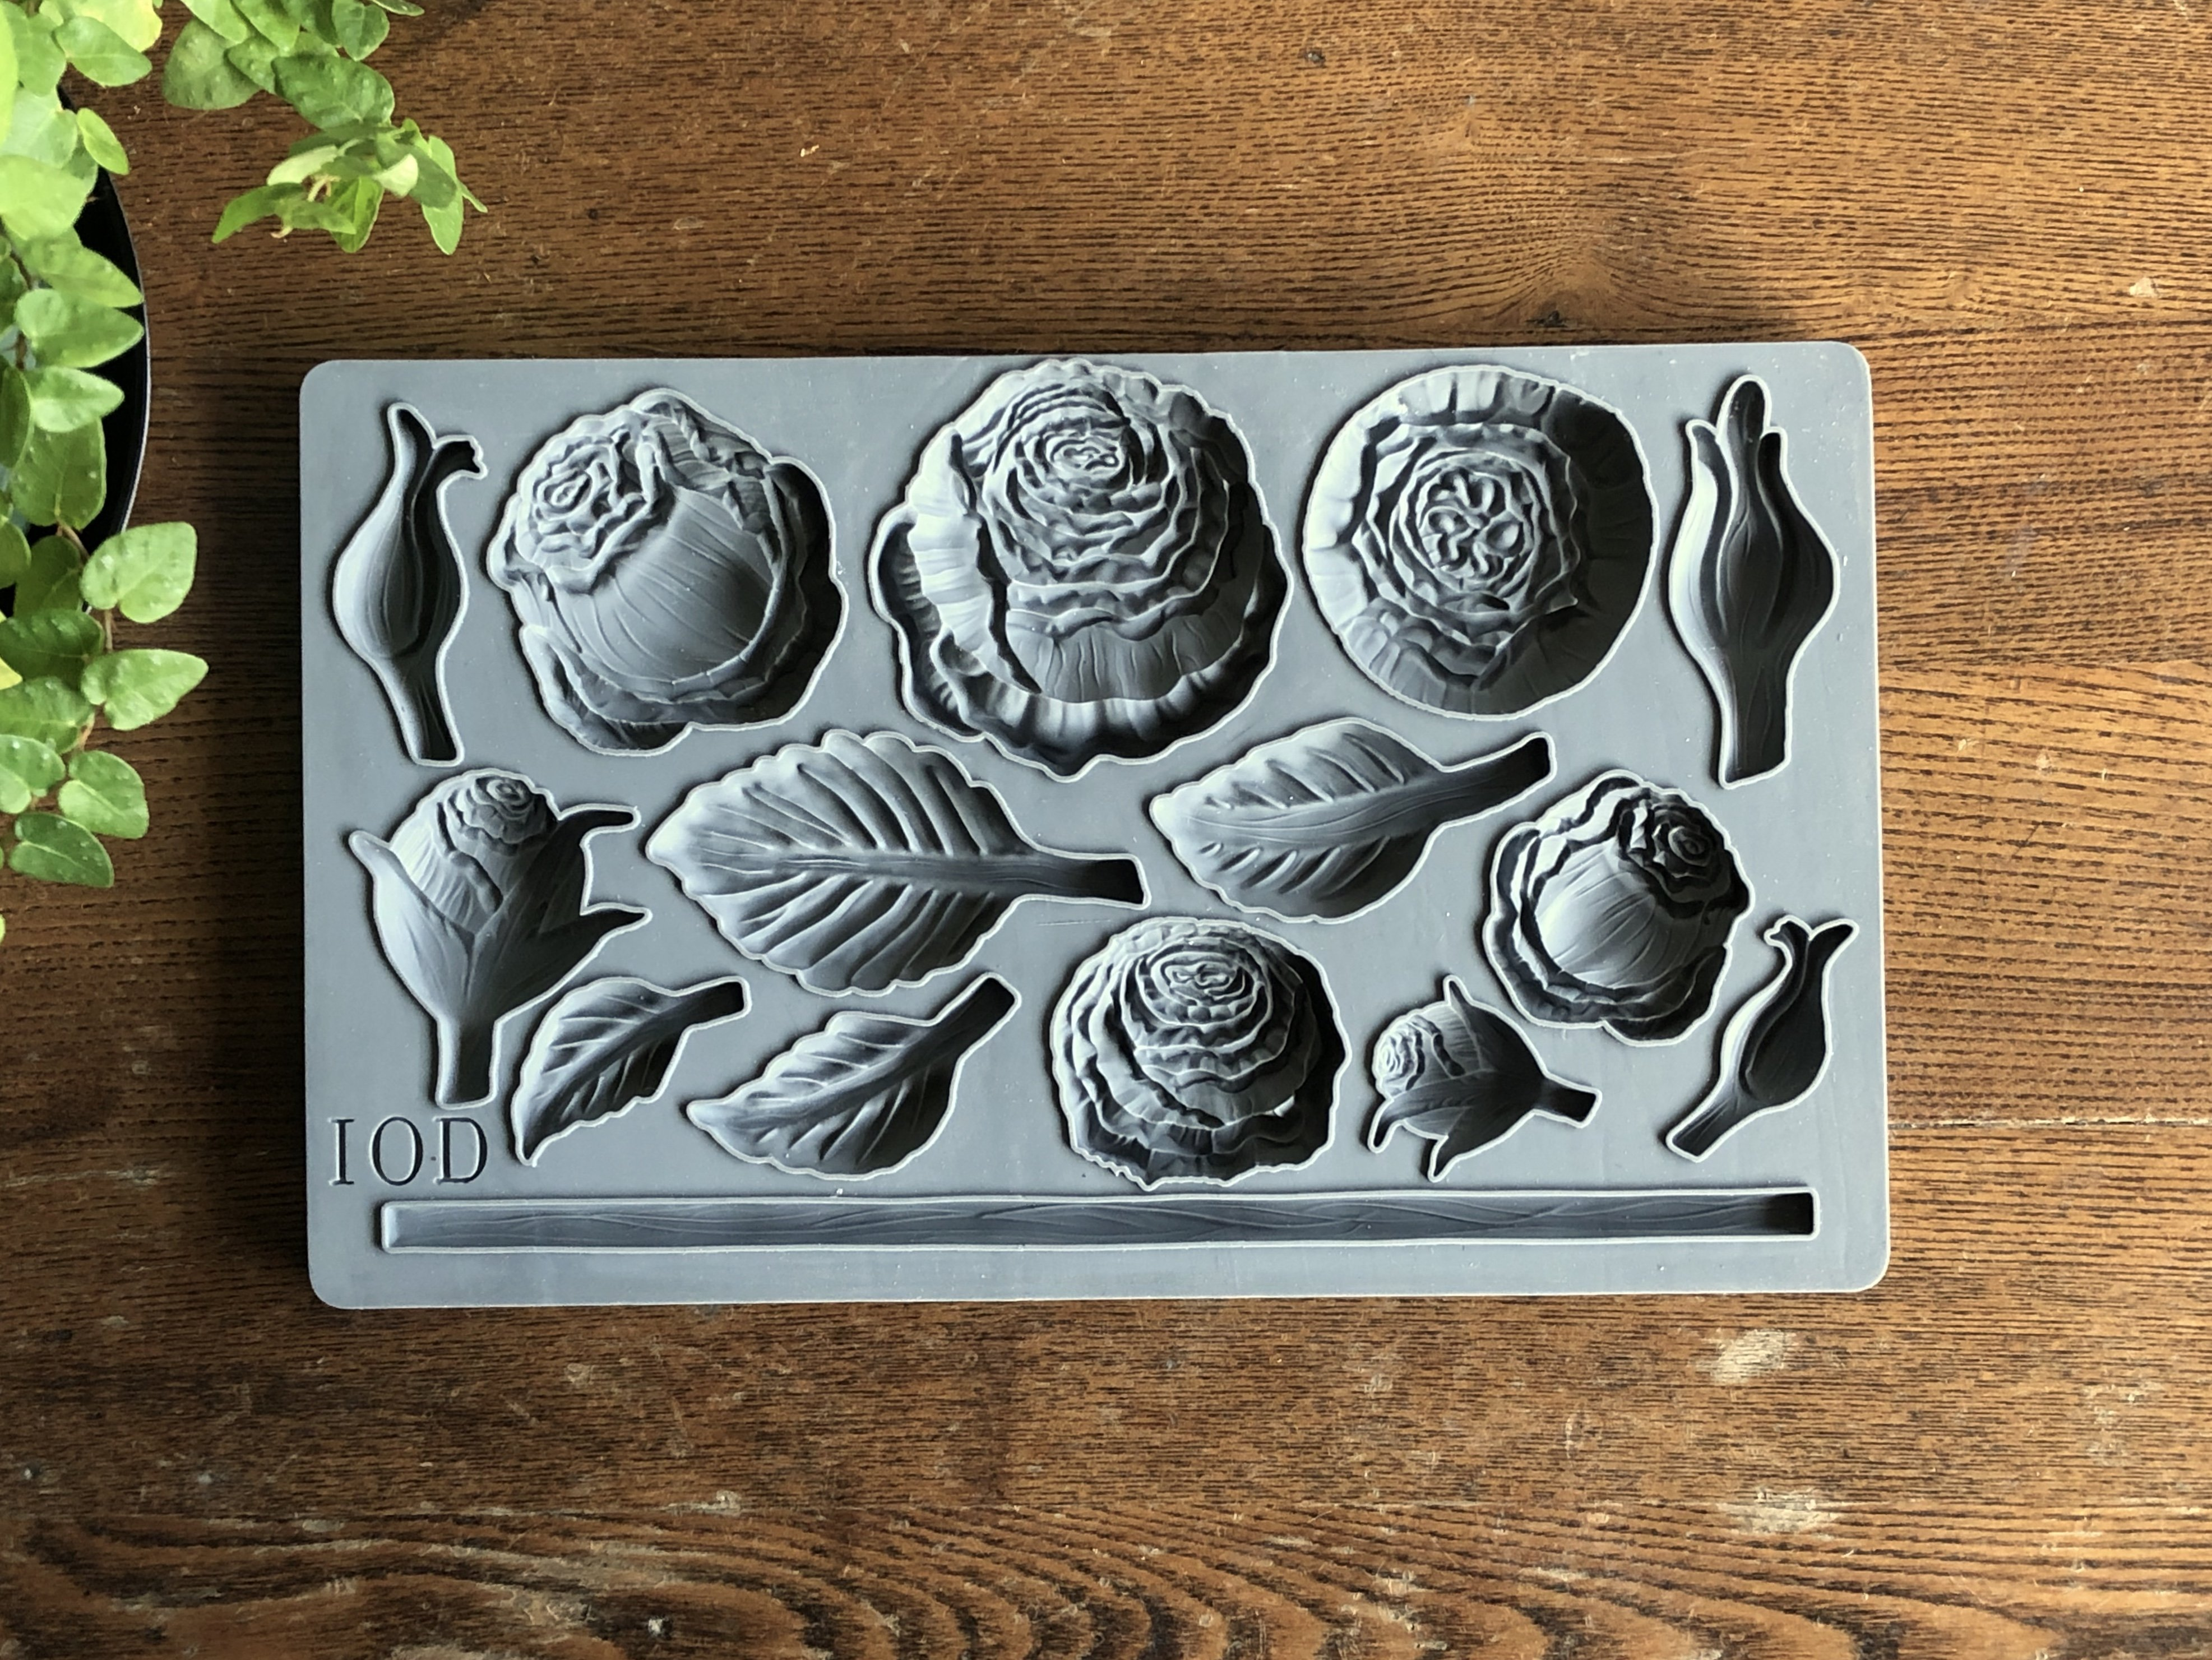 Have fun adding texture to your projects with these Iron Orchid Designs Decor Moulds -Heirloom Roses   www.raggedy-bits.com   #raggedybits #IOD #HeirloomRoses #texture #DIY #Moulds